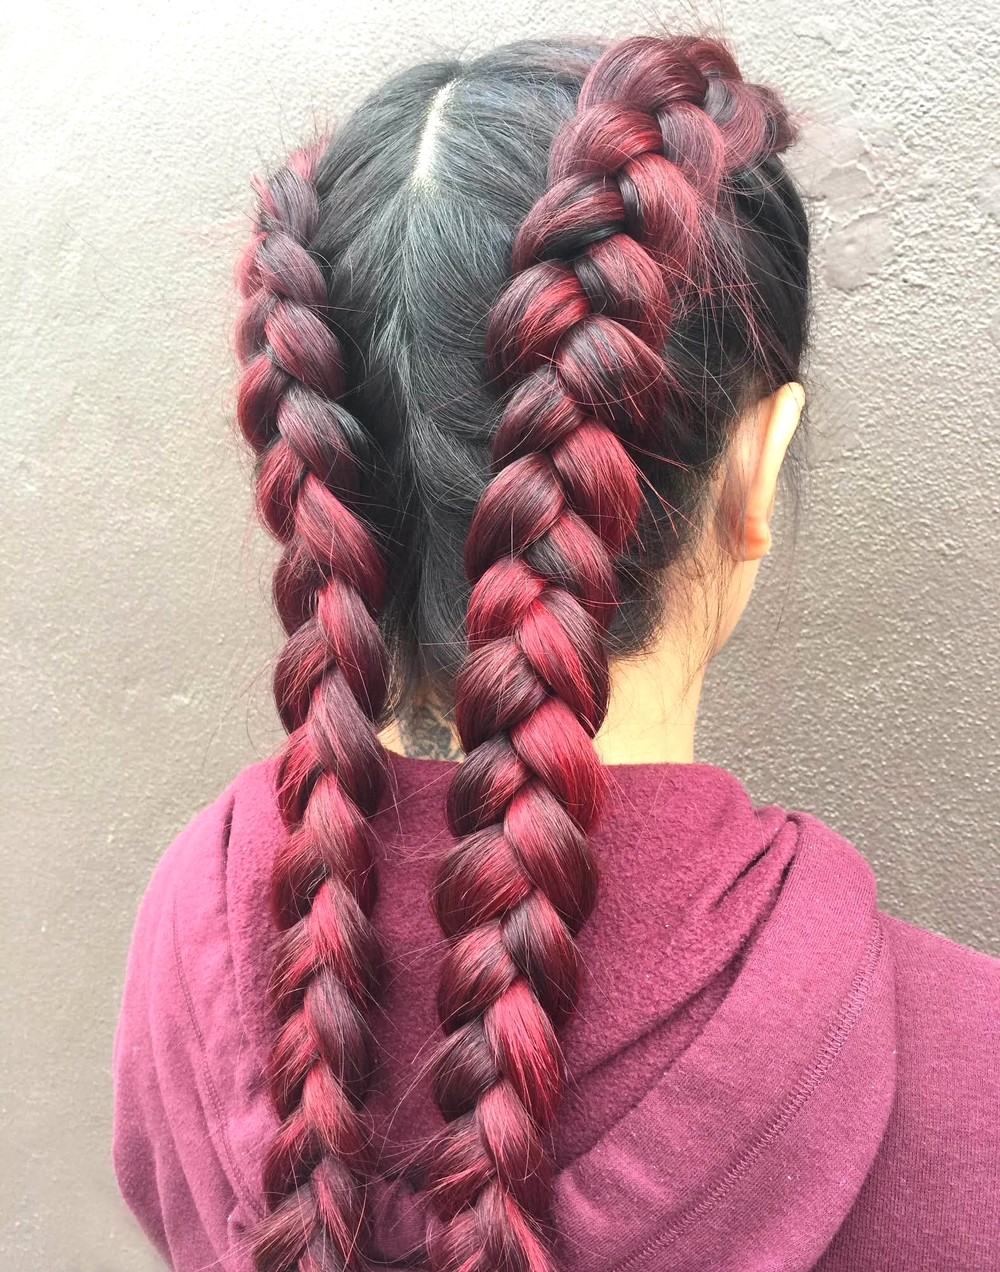 junglered-salon-braids.jpg